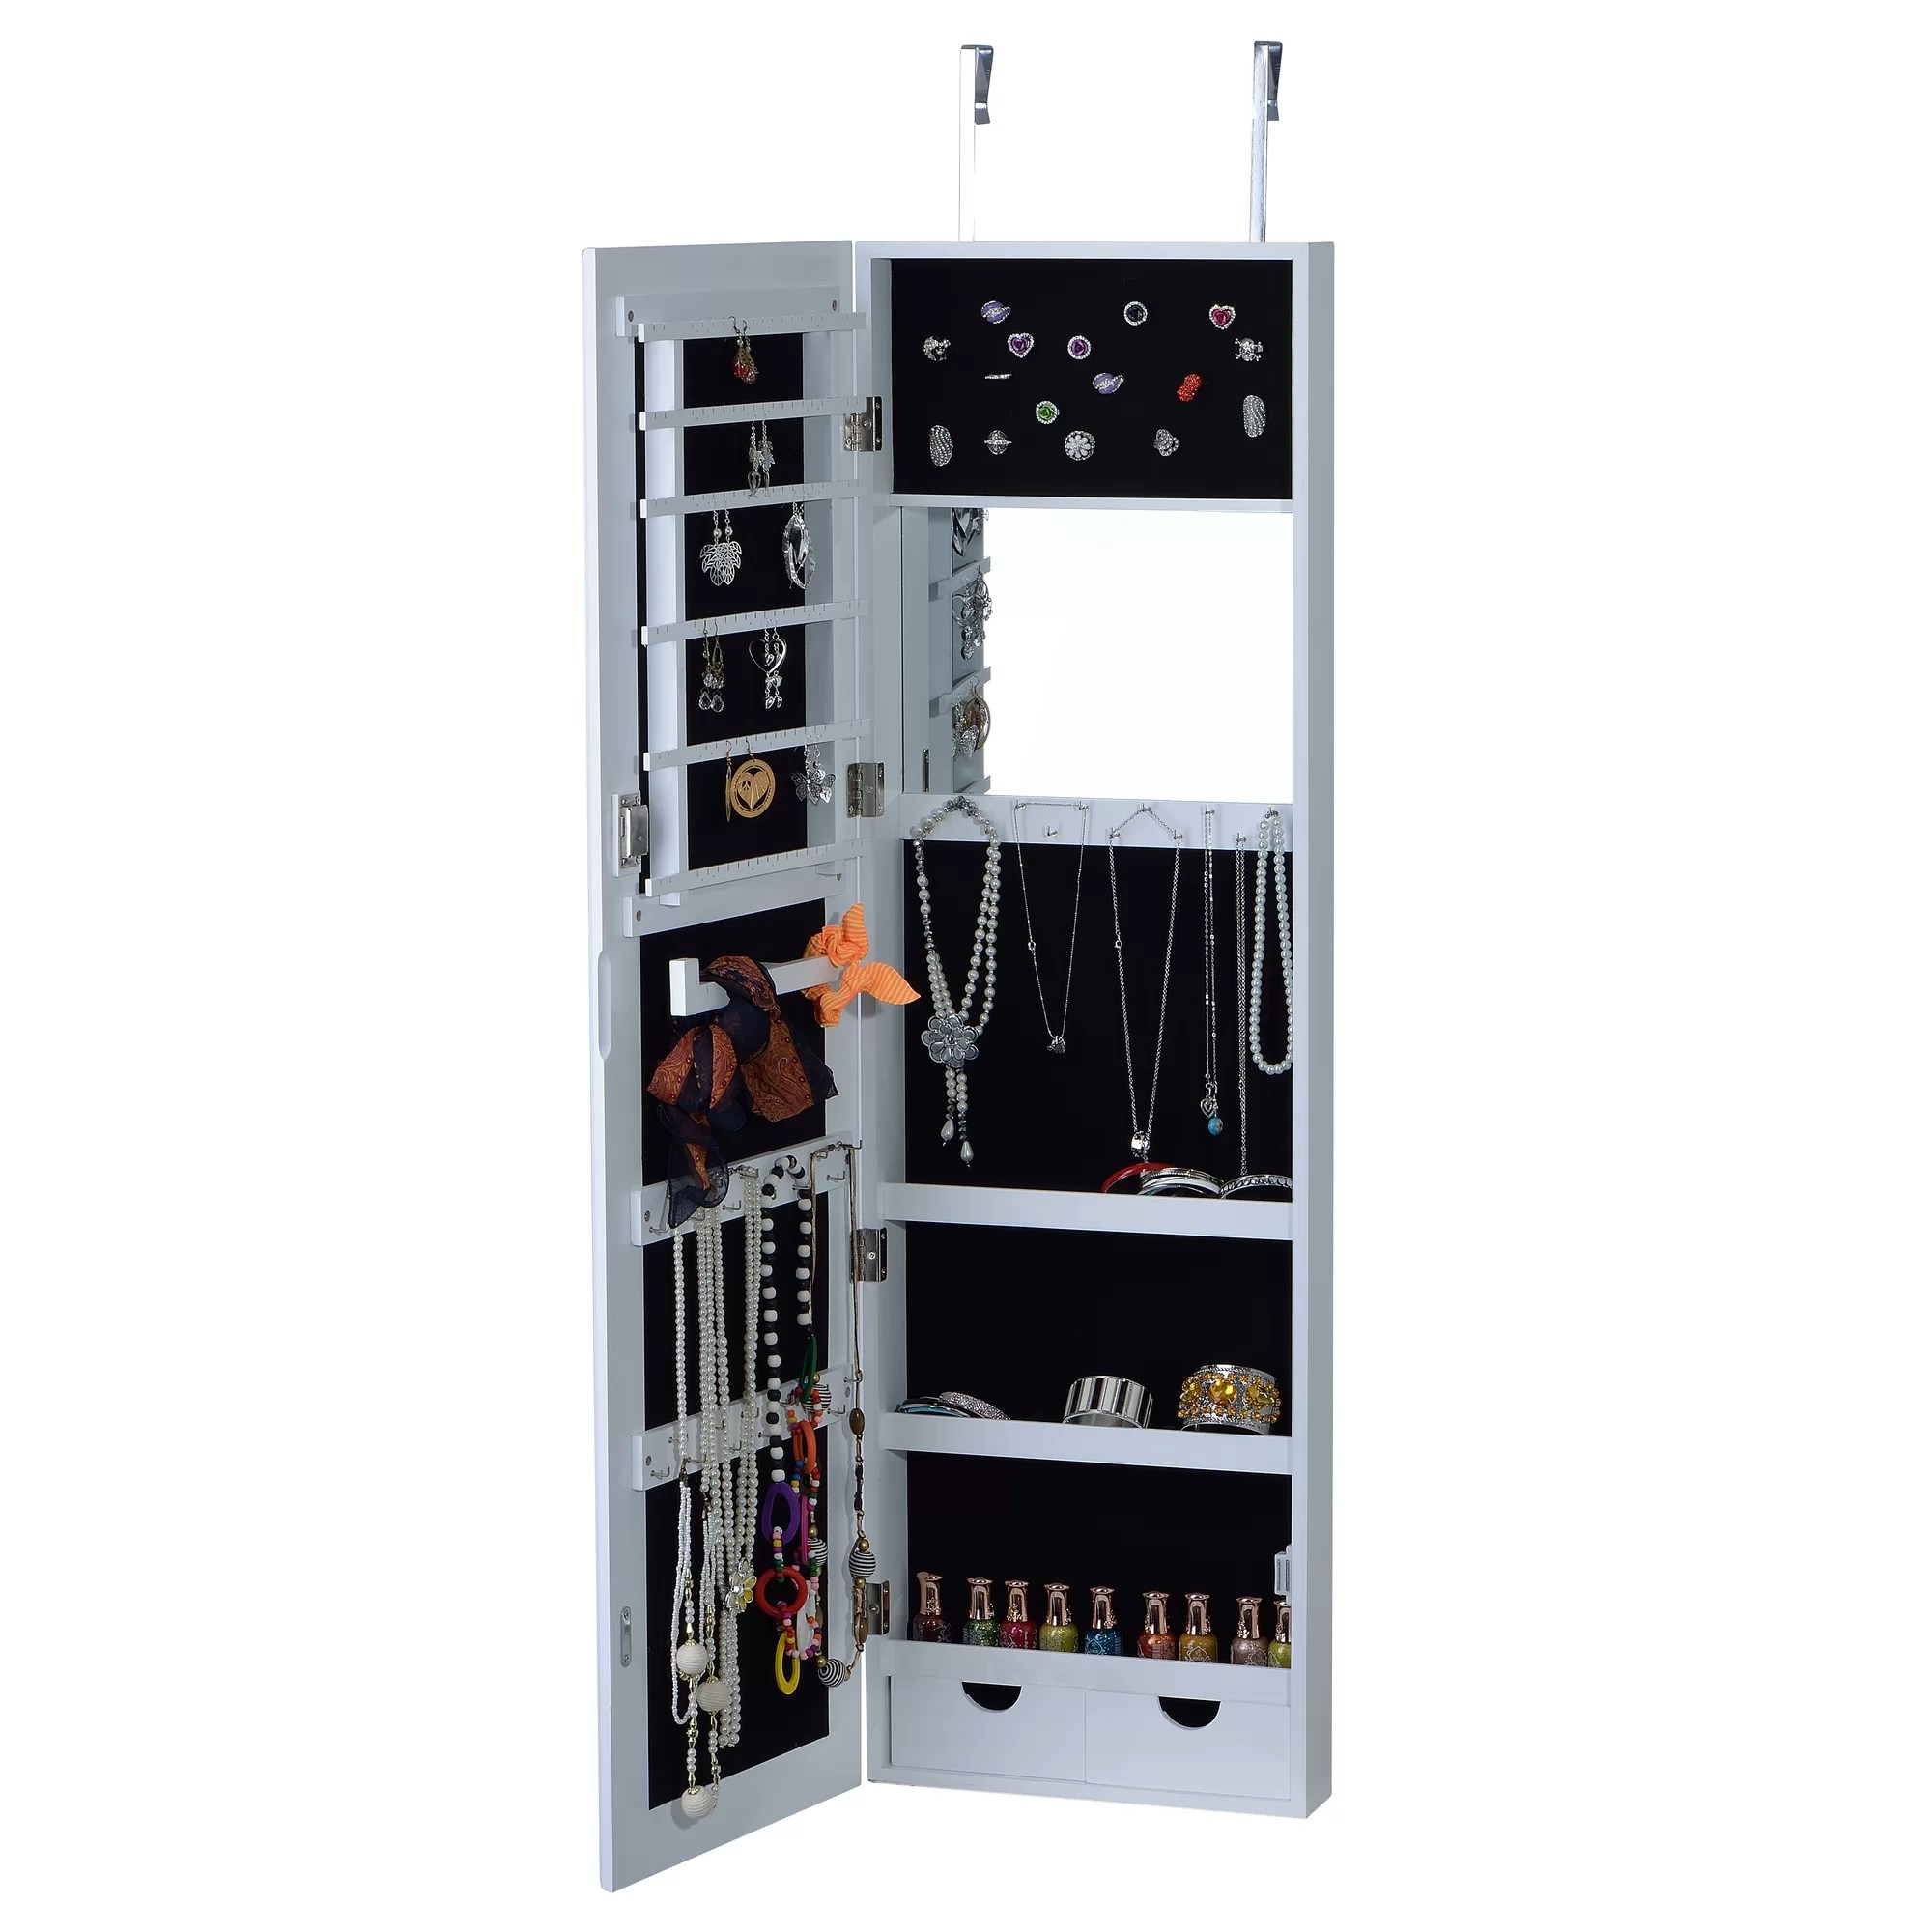 Le Meilleur Innerspace Luxury Products Over The Door Jewelry Armoire Ce Mois Ci